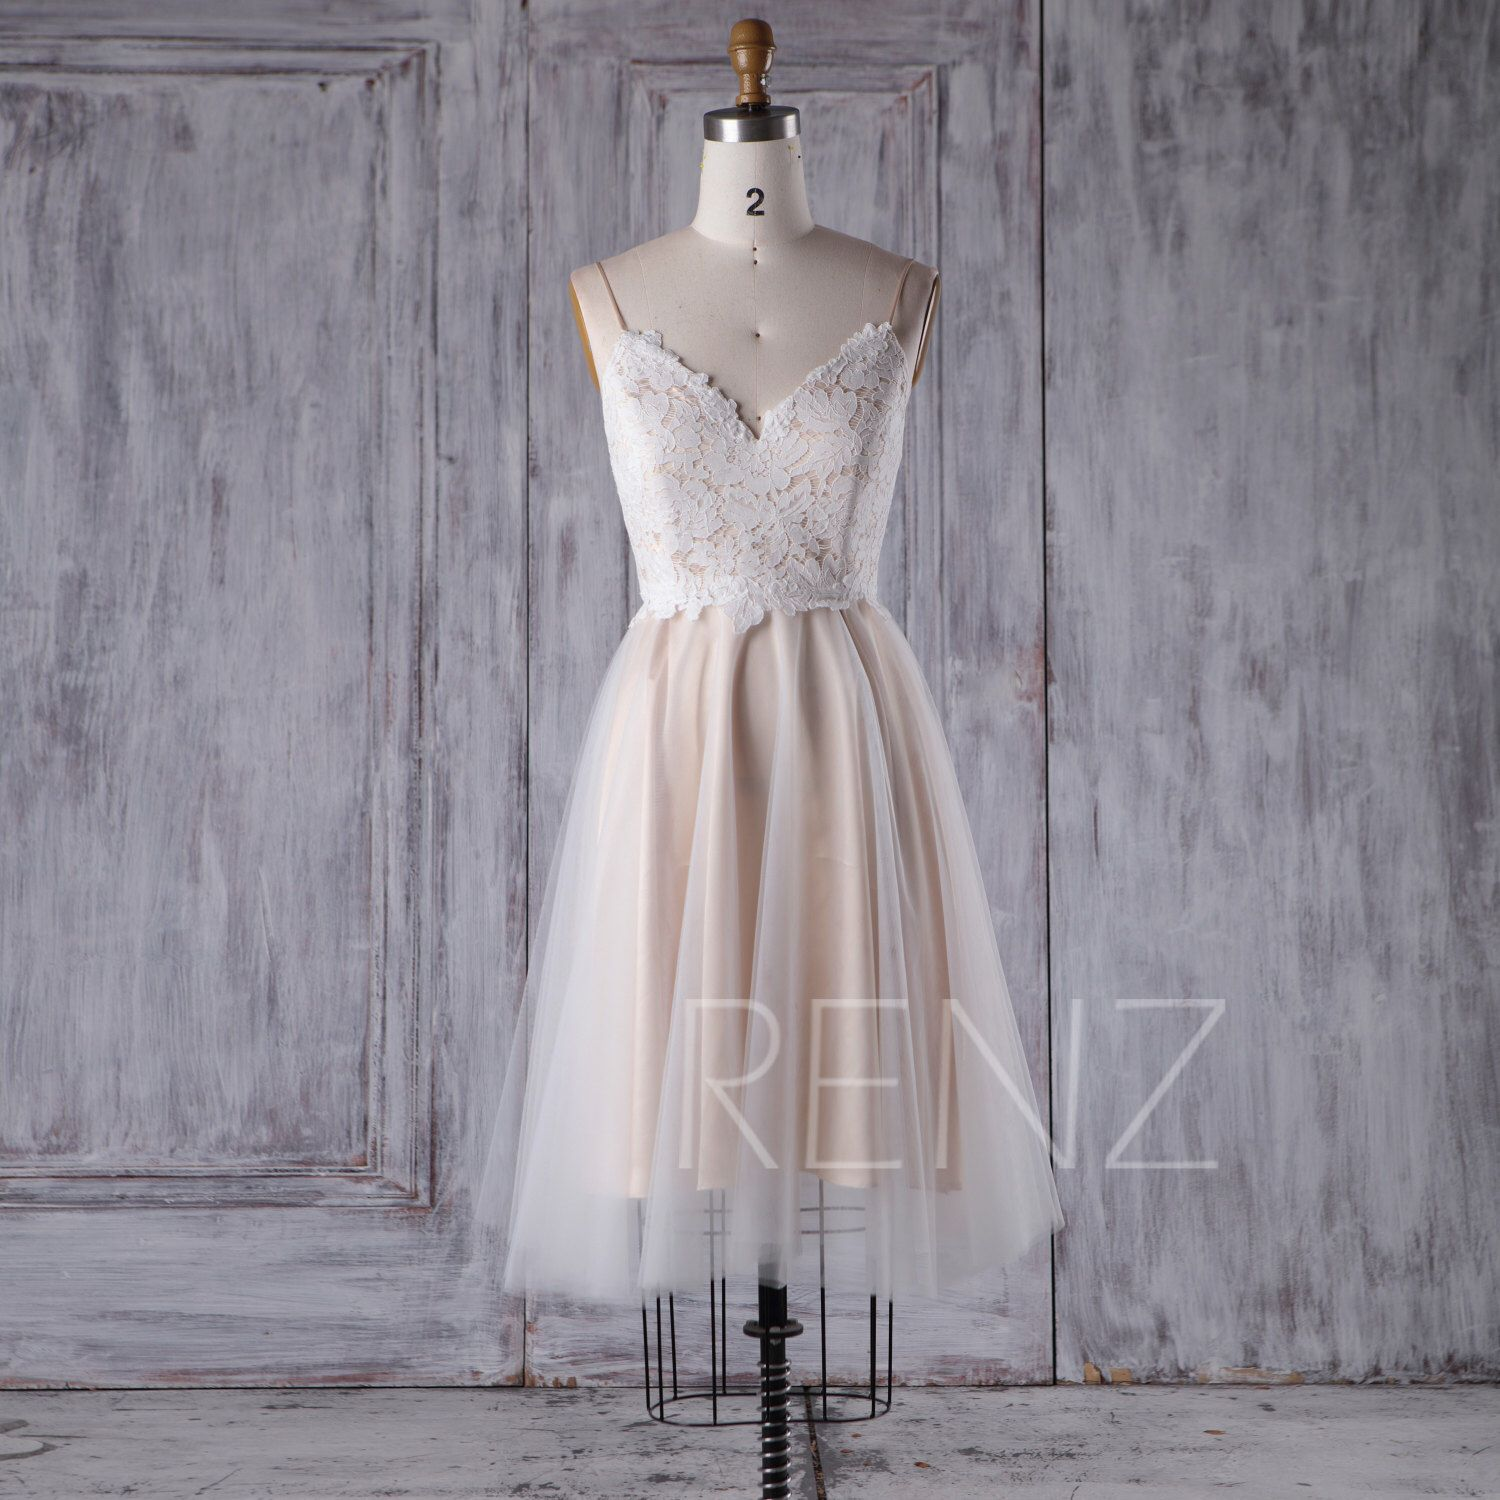 Off white lace tulle bridesmaid dress v neck wedding dress a line